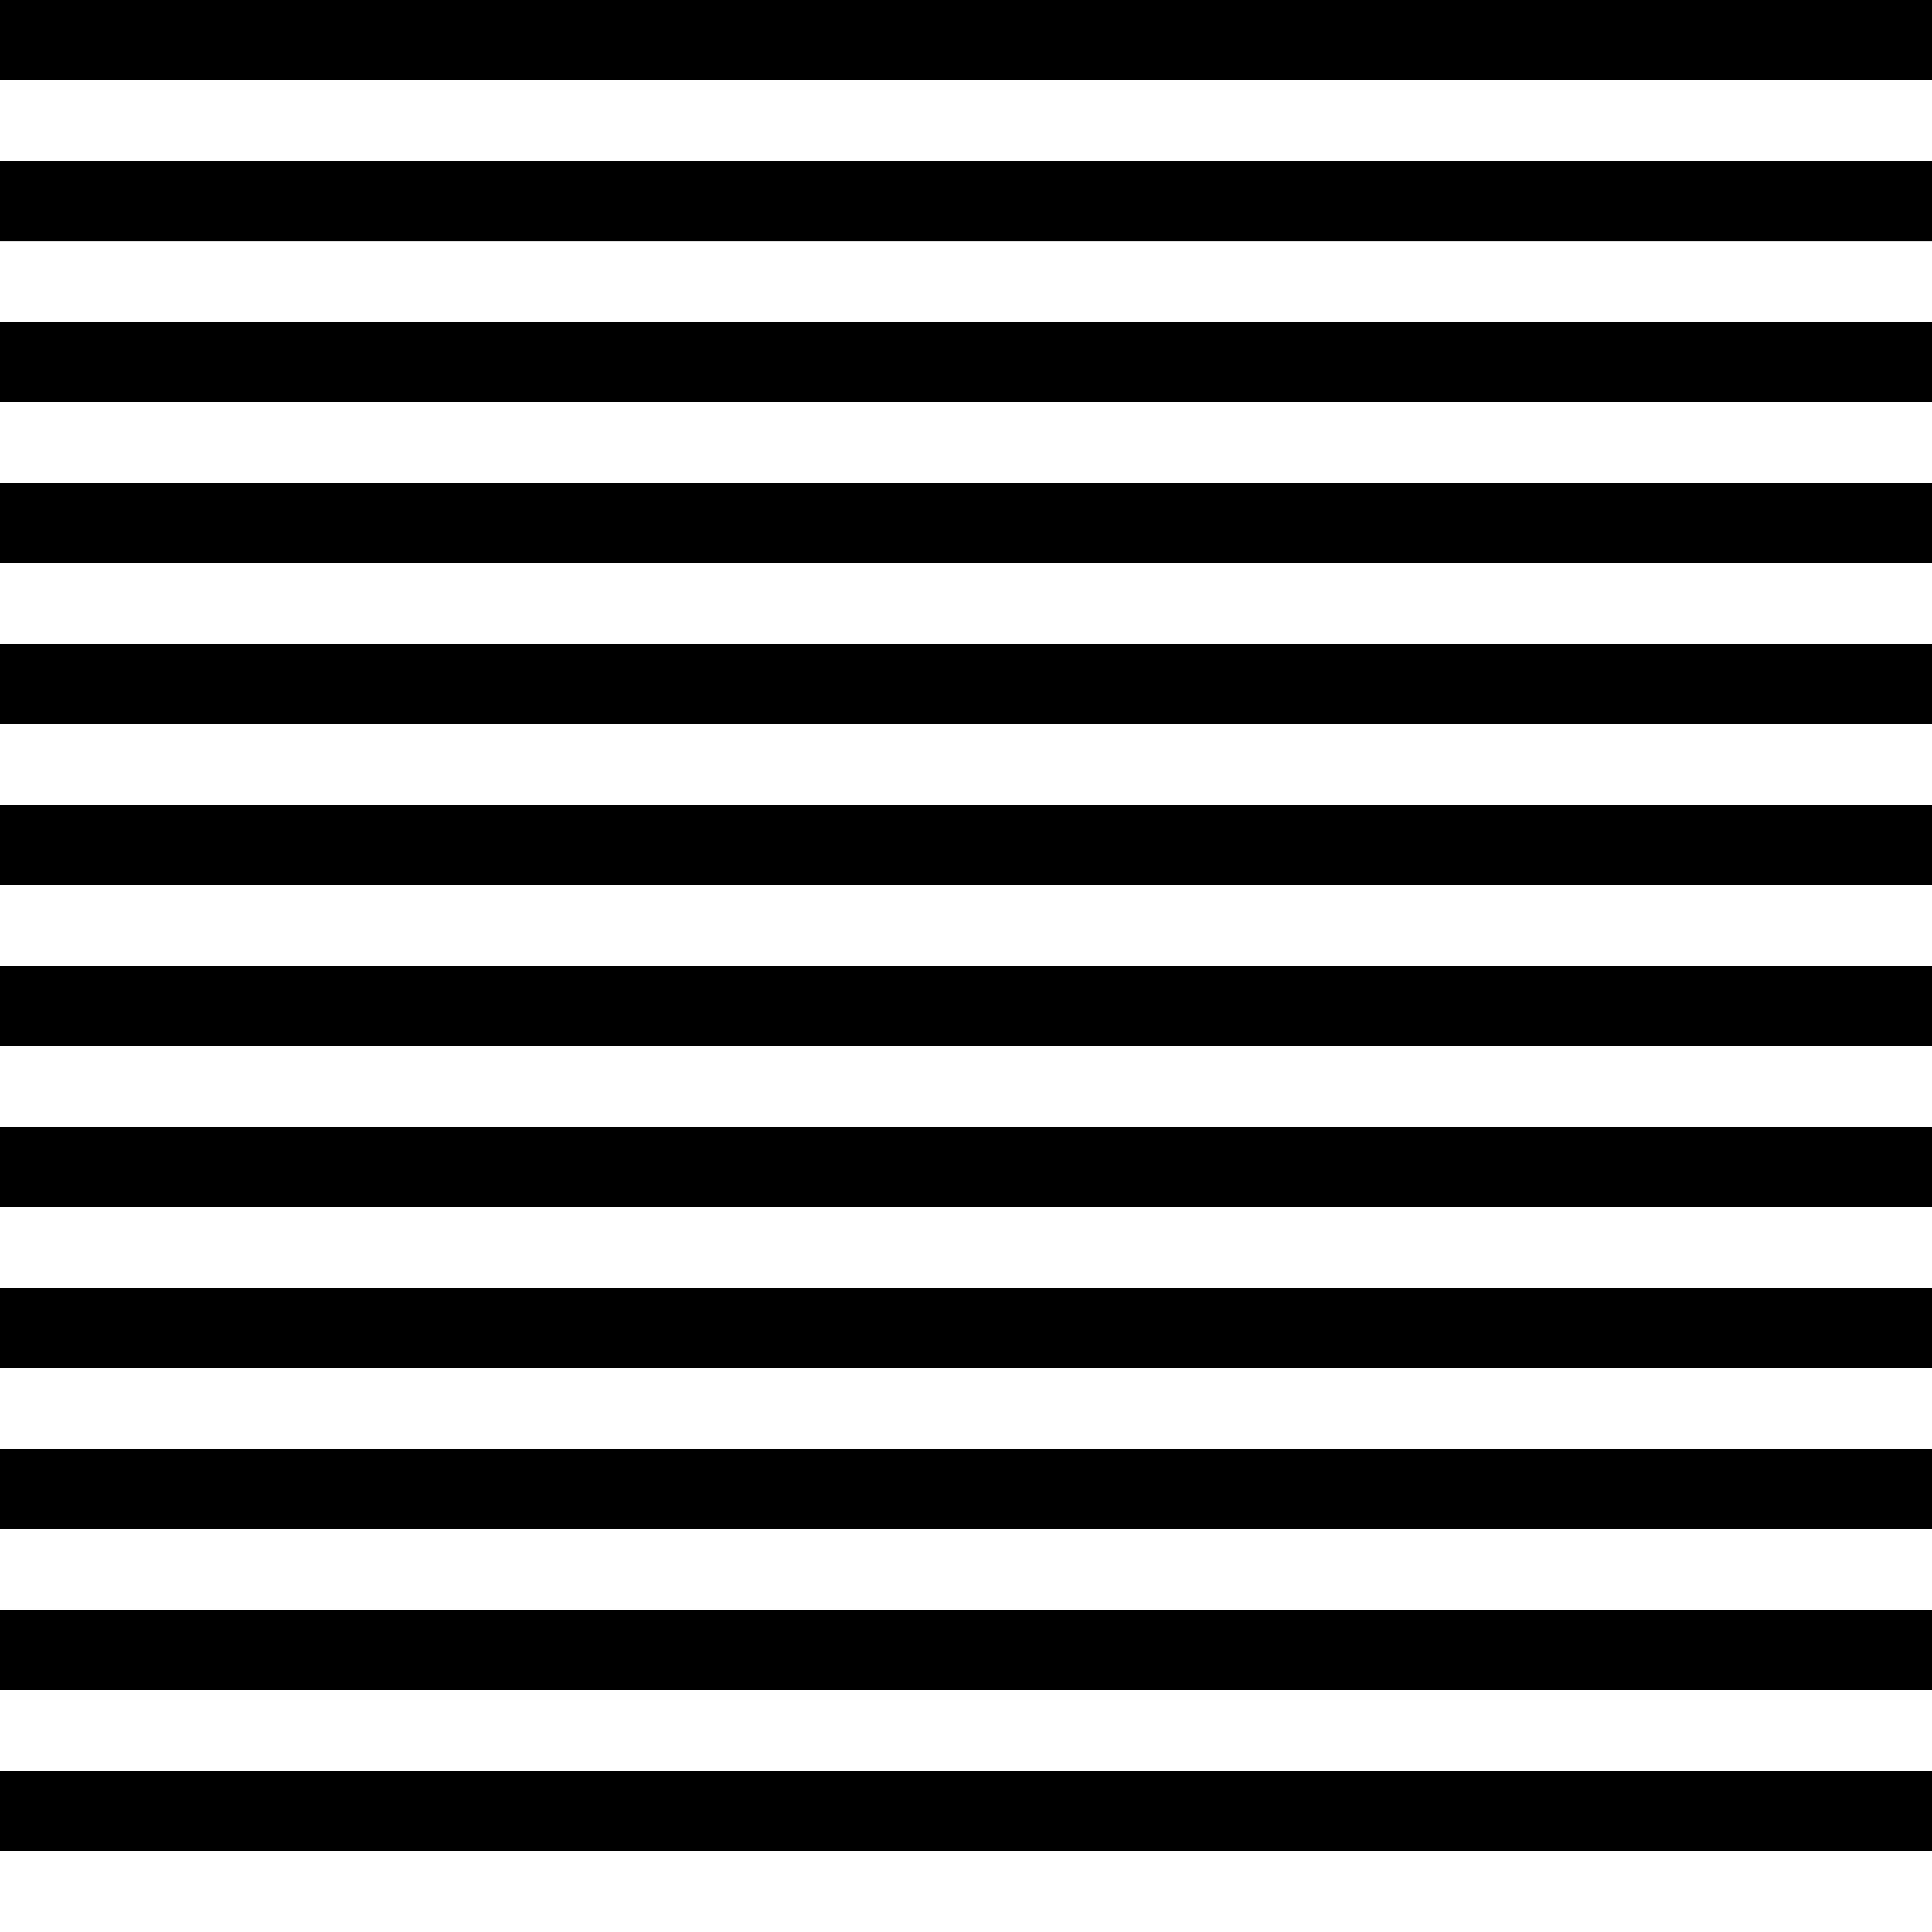 Black and White Striped Pattern.